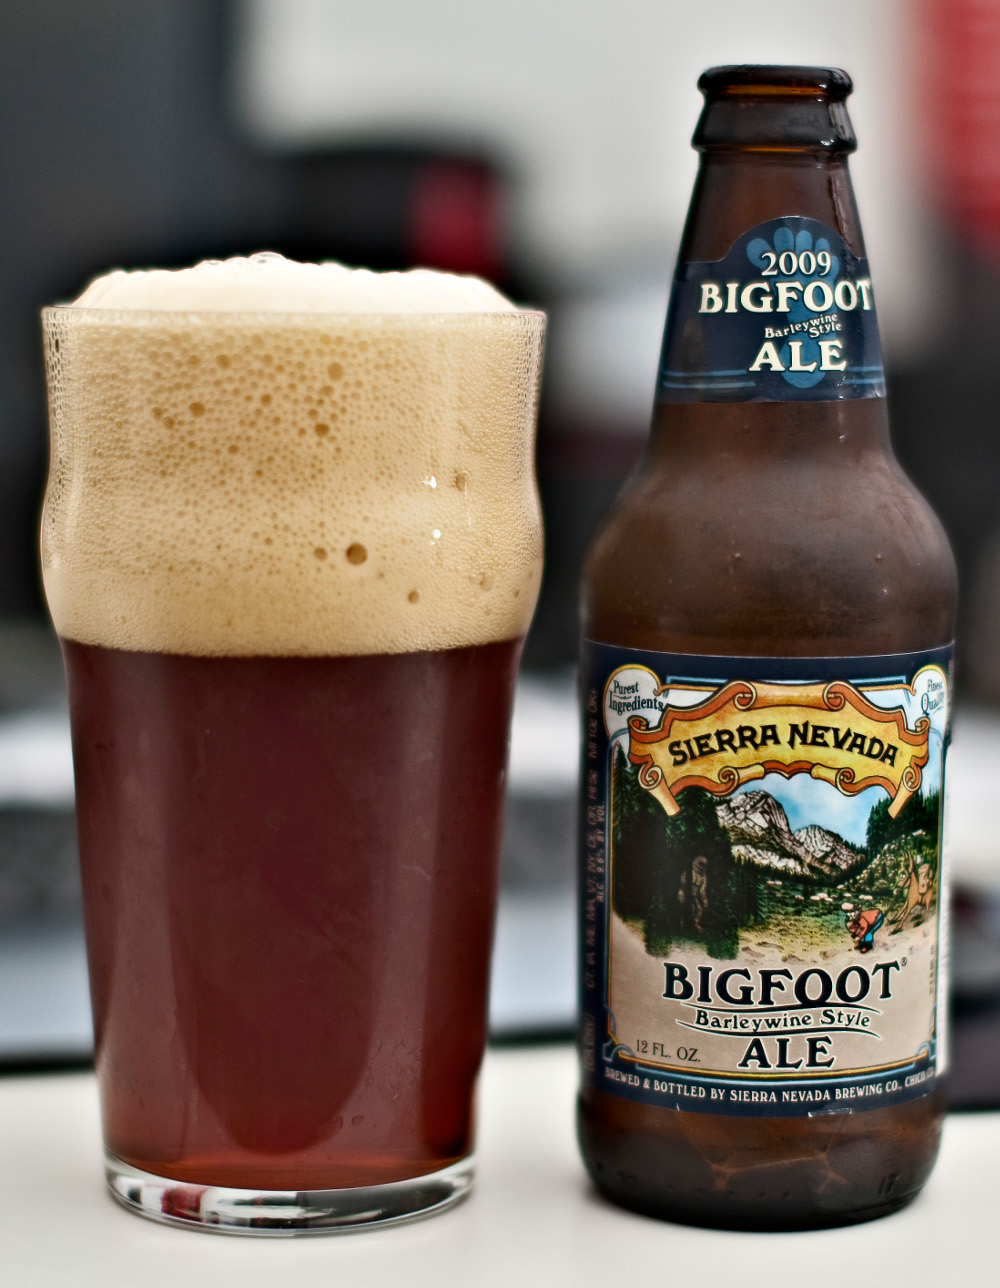 Sierra Nevada Bigfoot Barleywine Style Ale (2009), edwin, CC BY 2.0